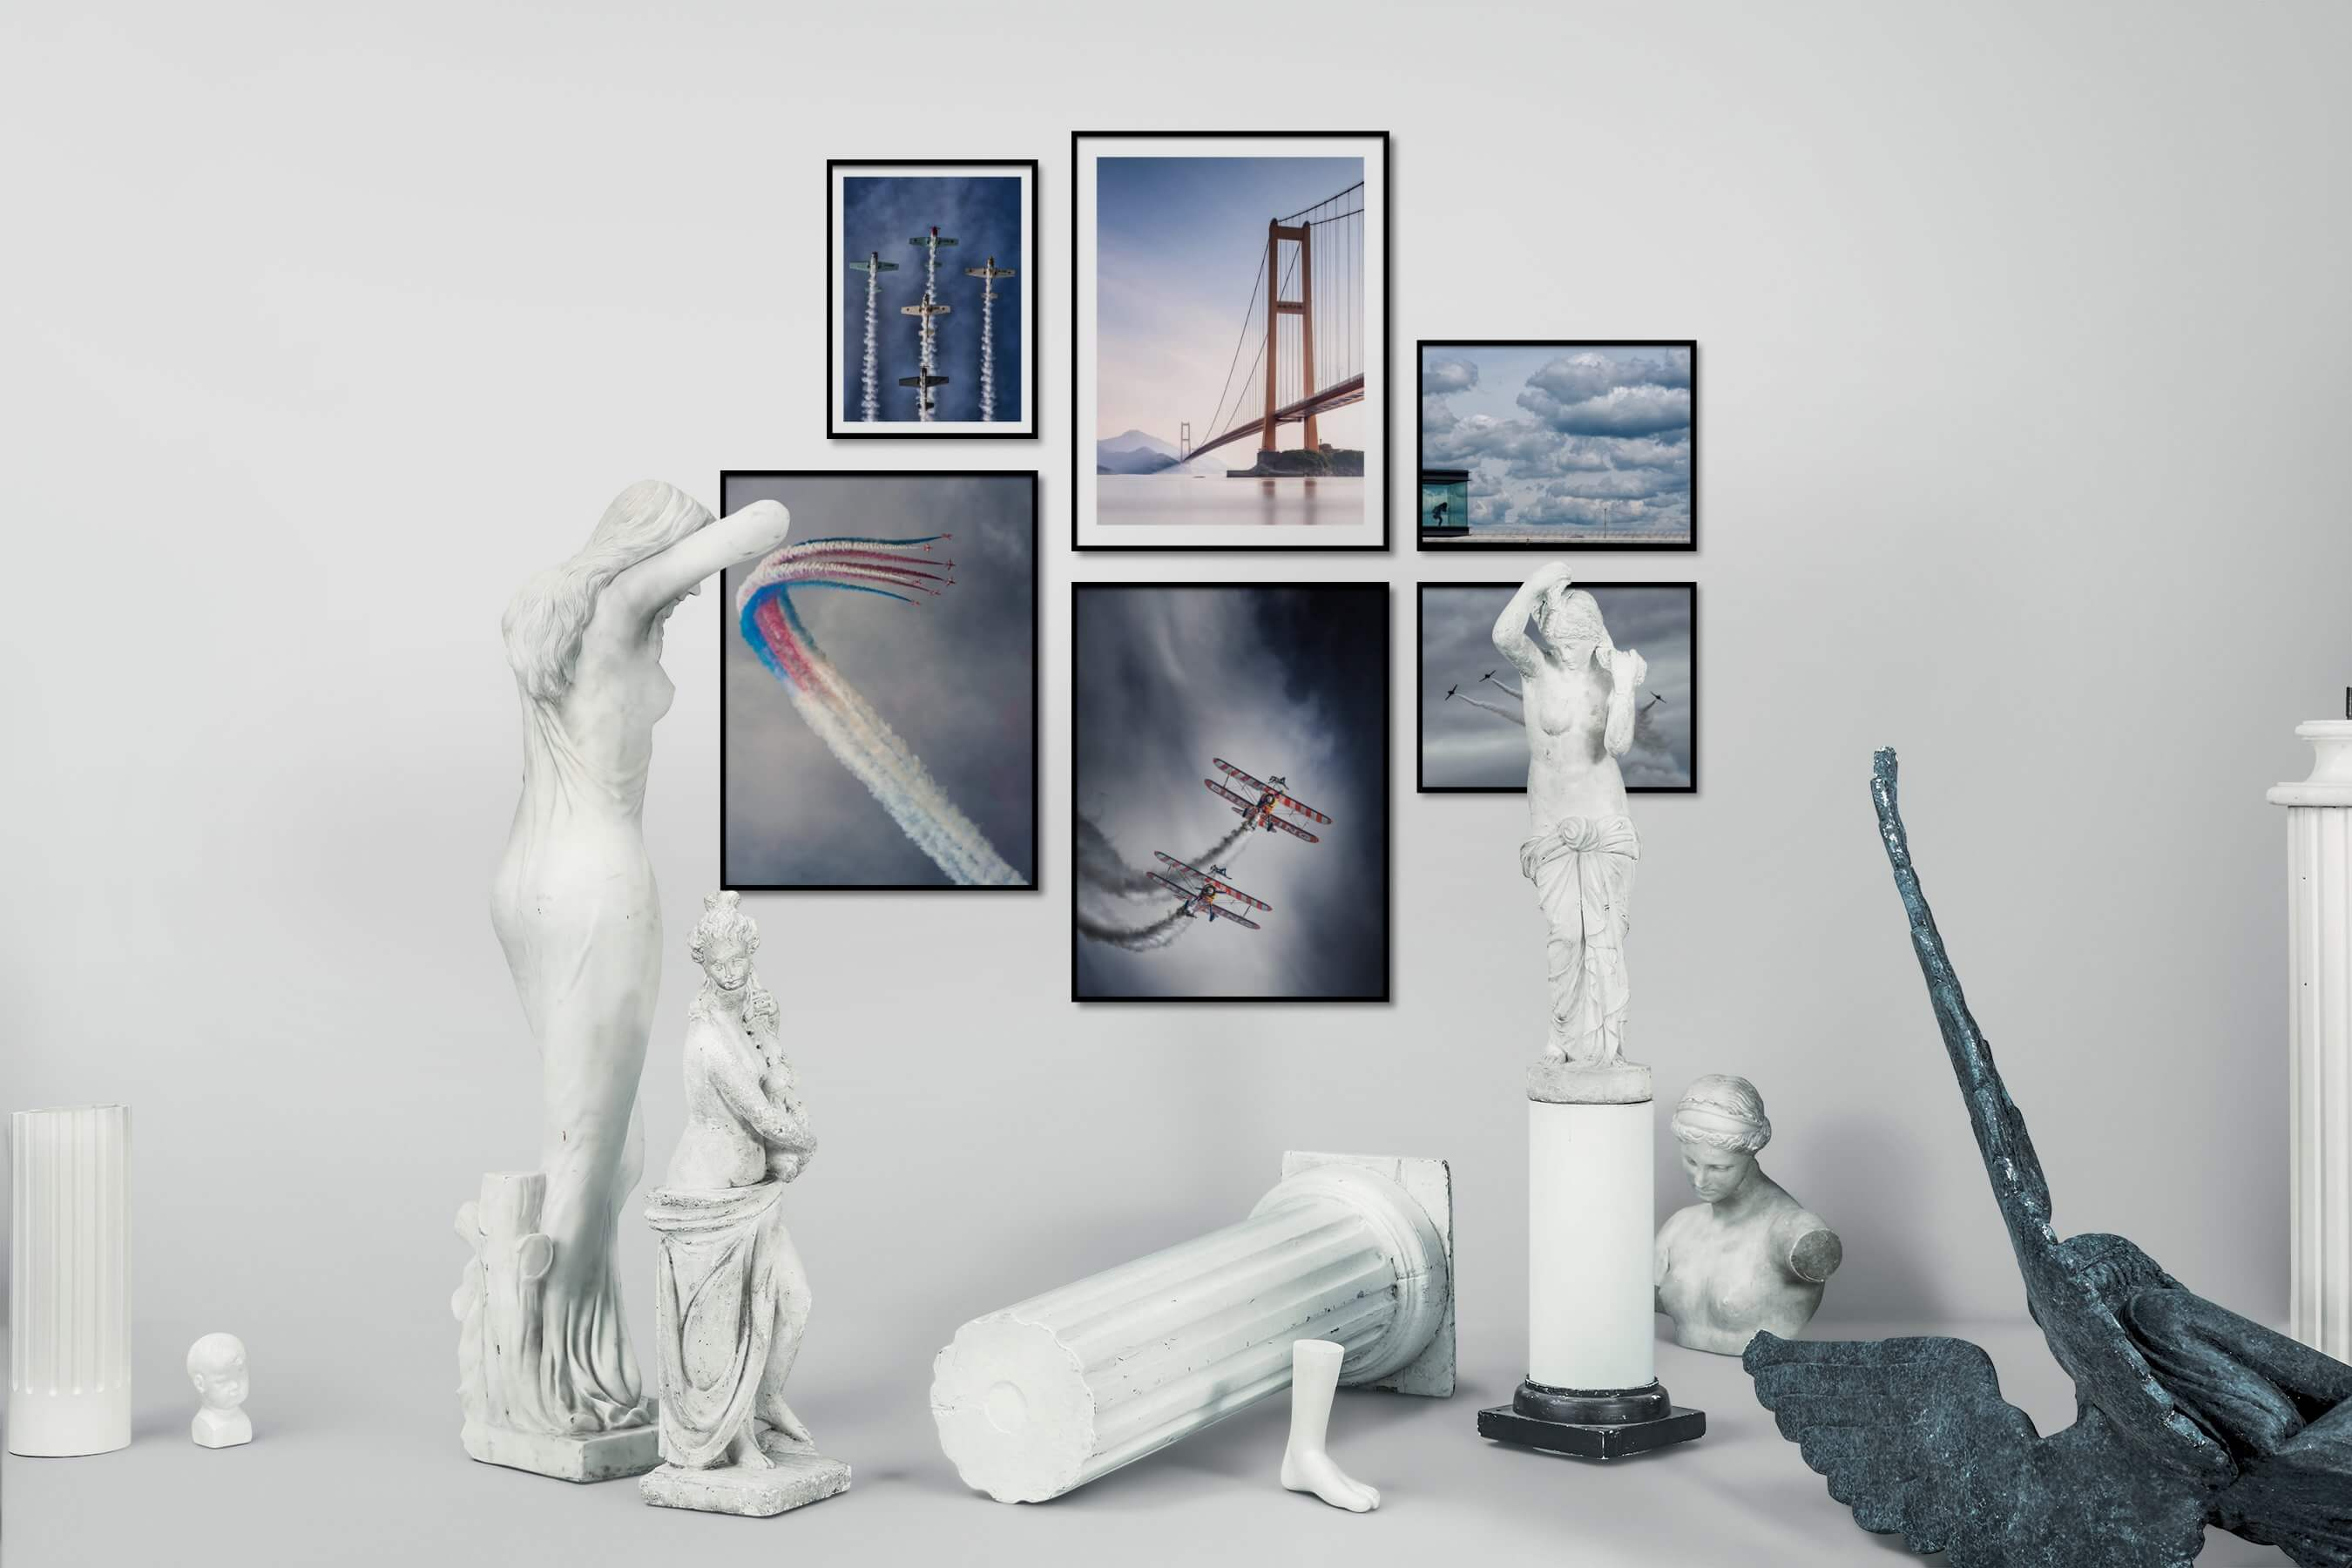 Gallery wall idea with six framed pictures arranged on a wall depicting For the Moderate and For the Minimalist